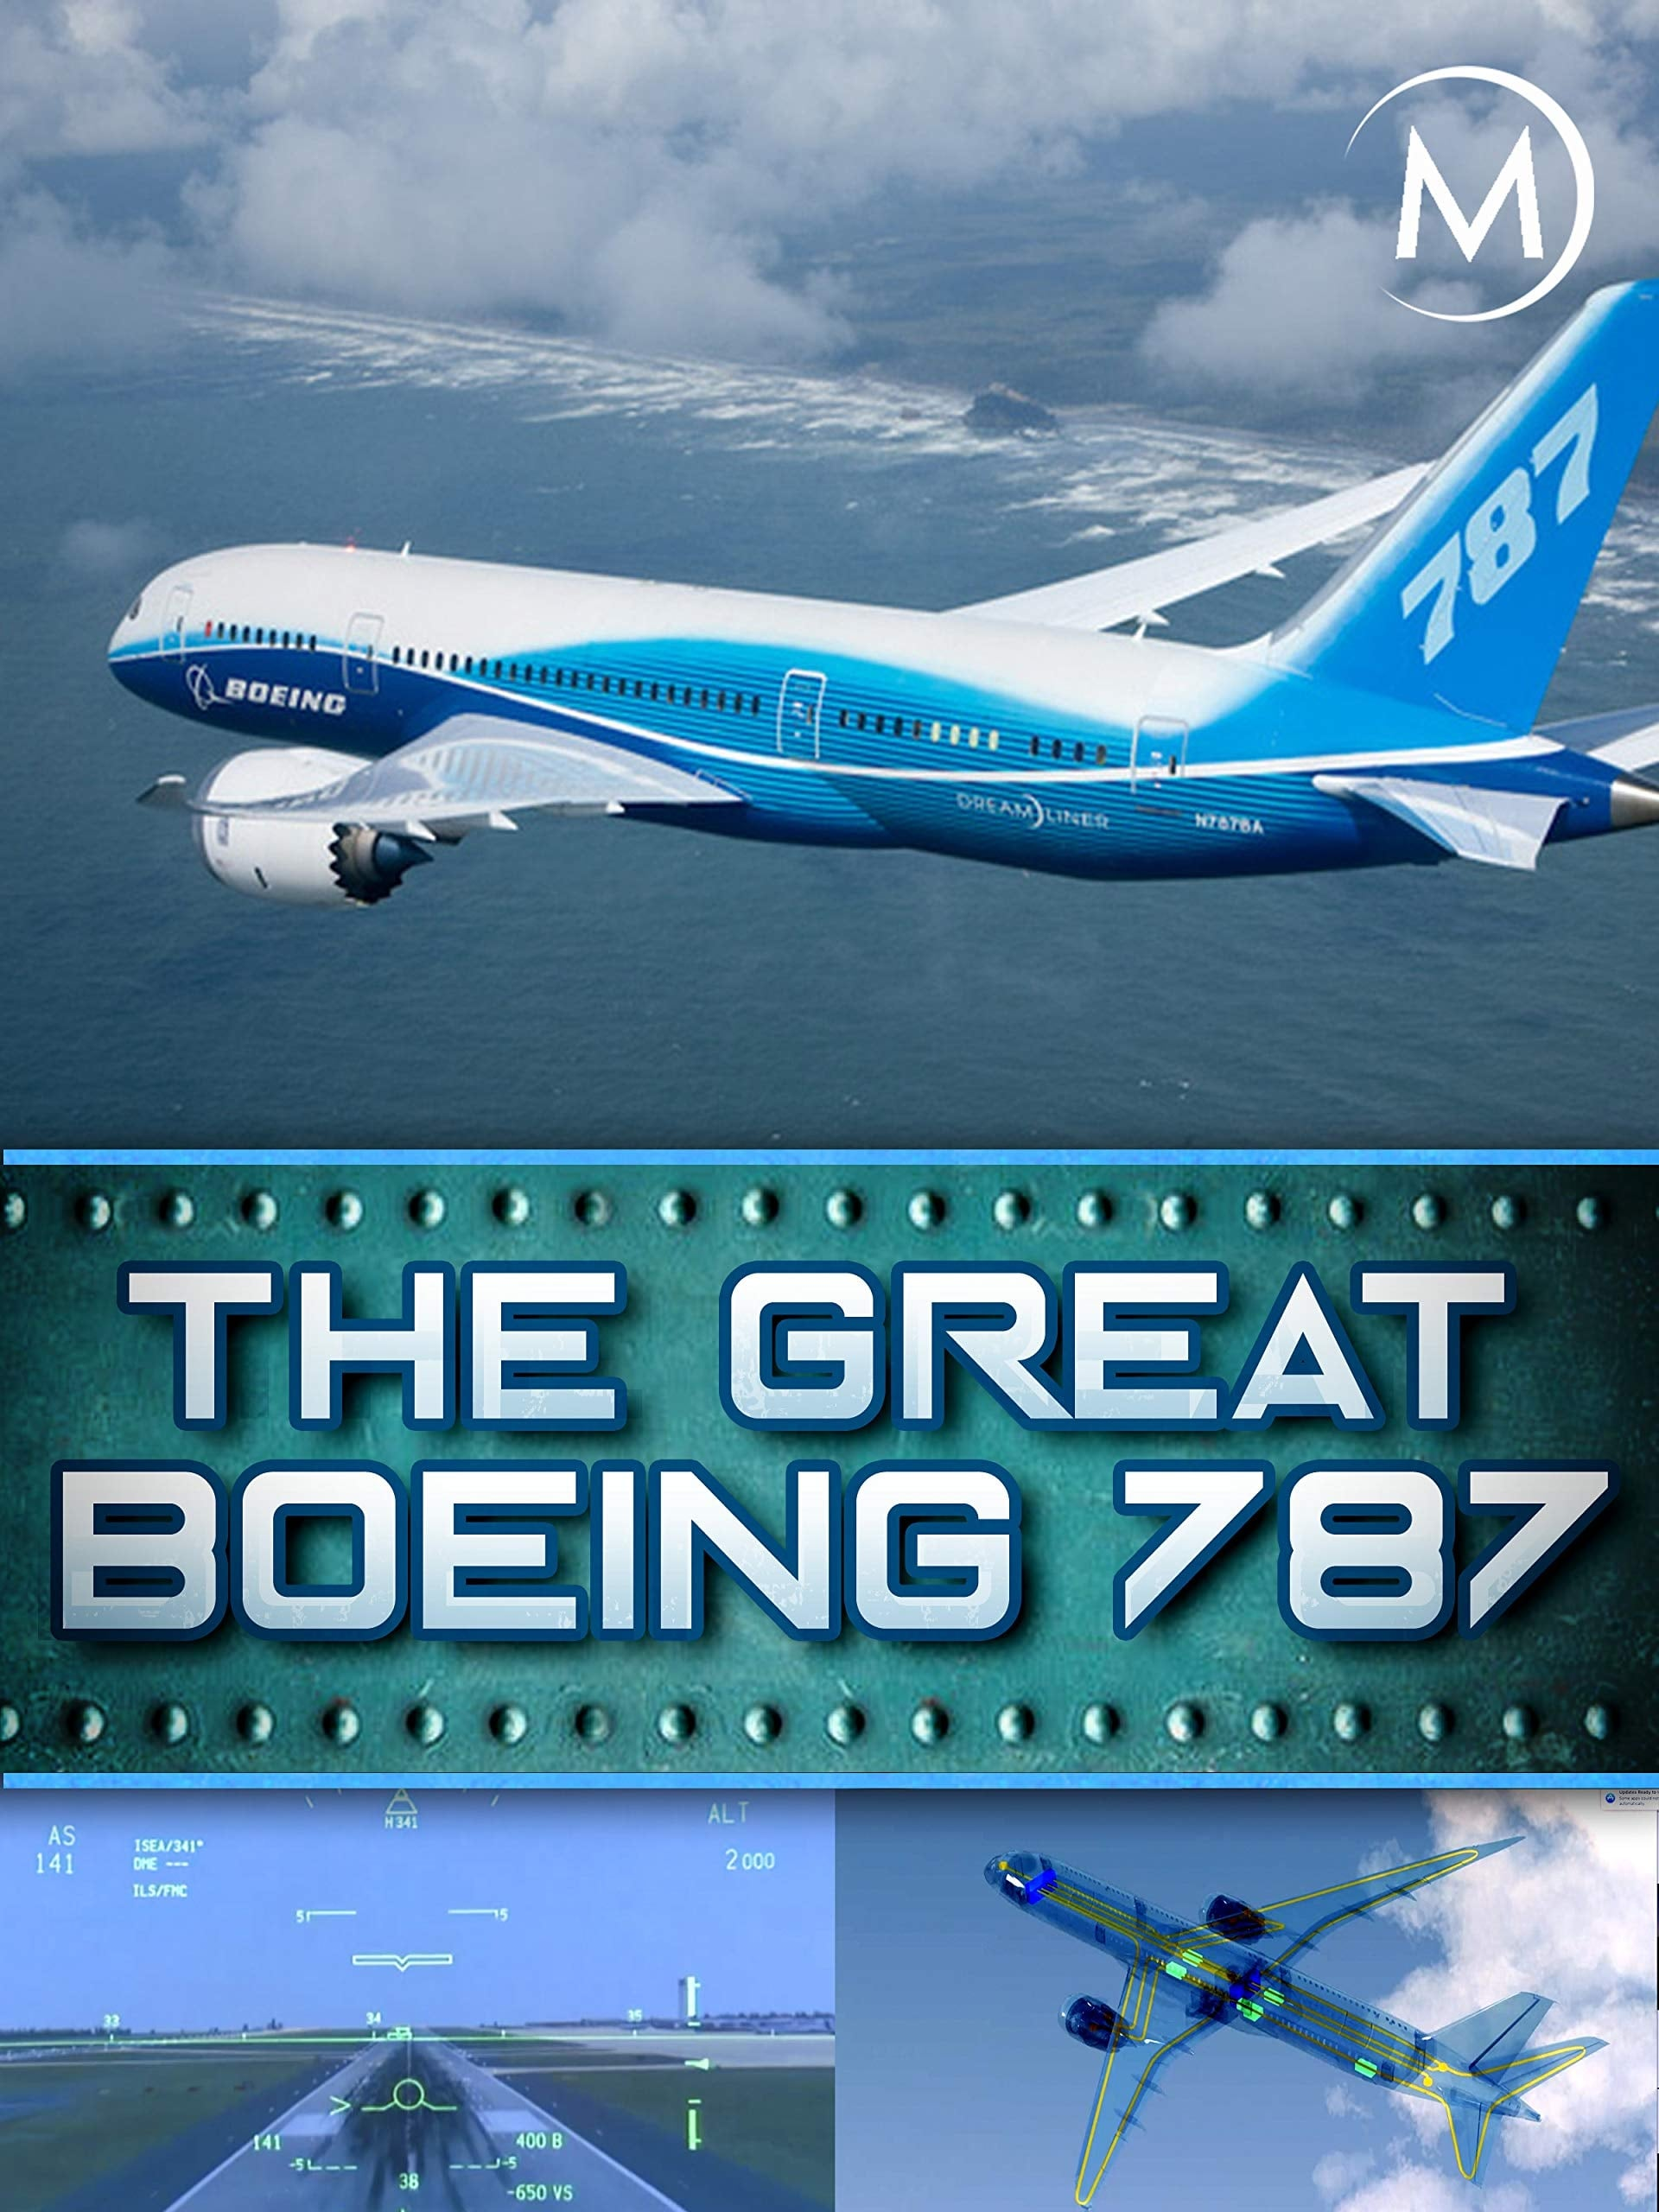 The Great Boeing 787 (1970)